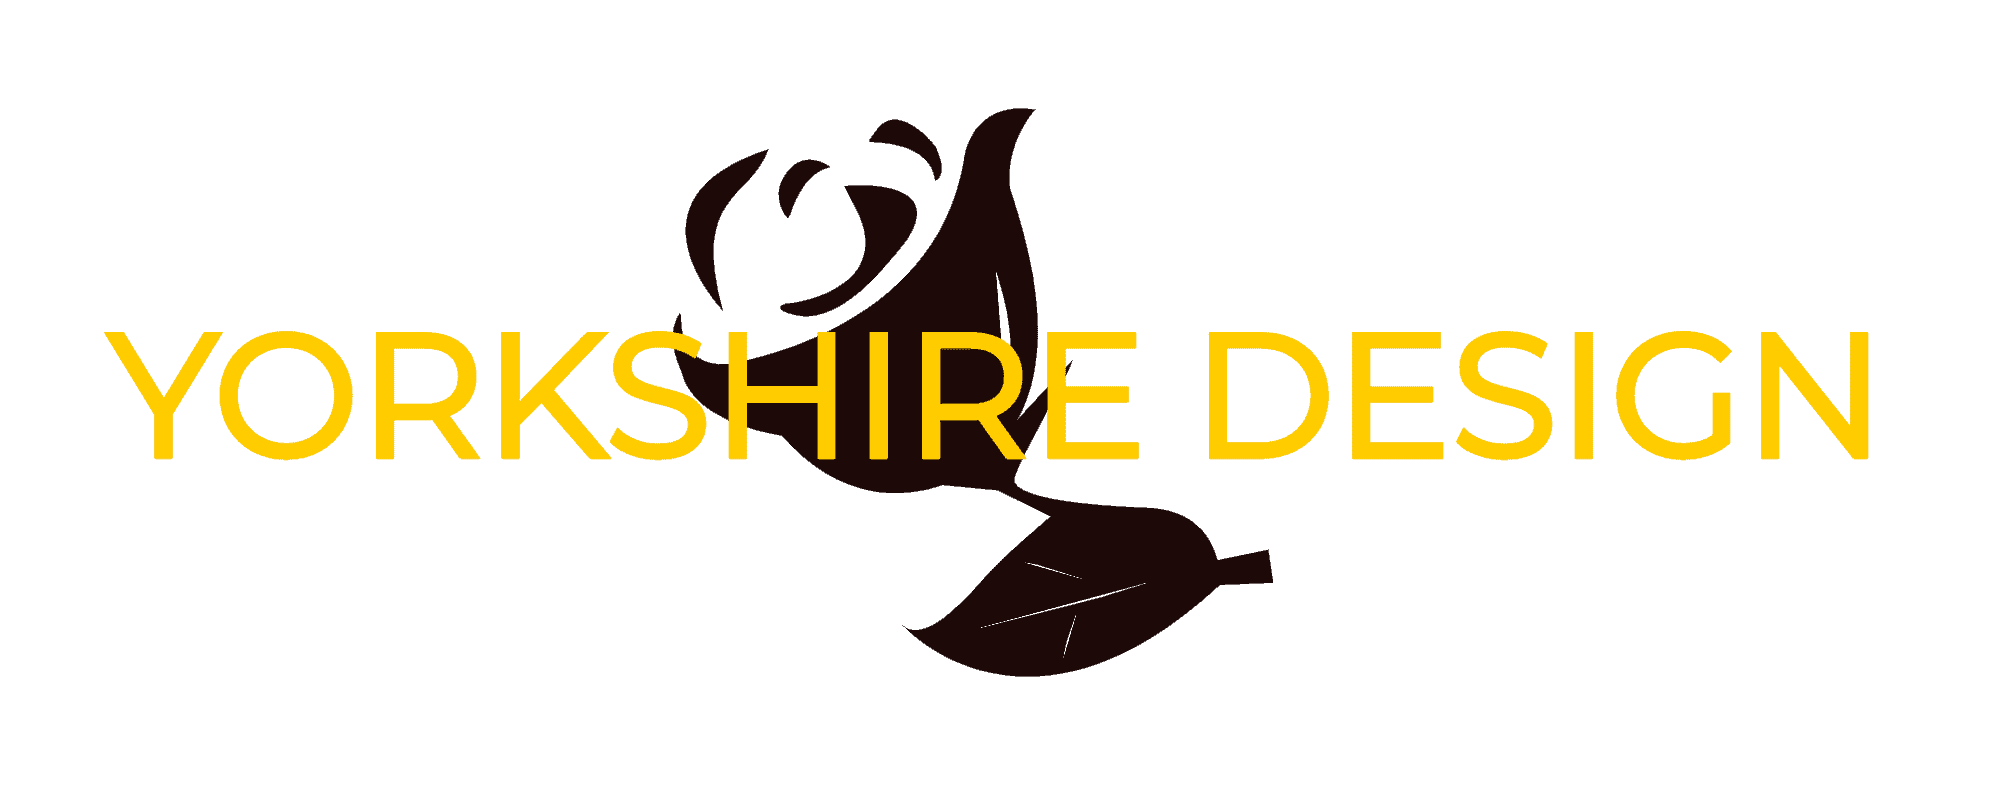 Yorkshire Design Store